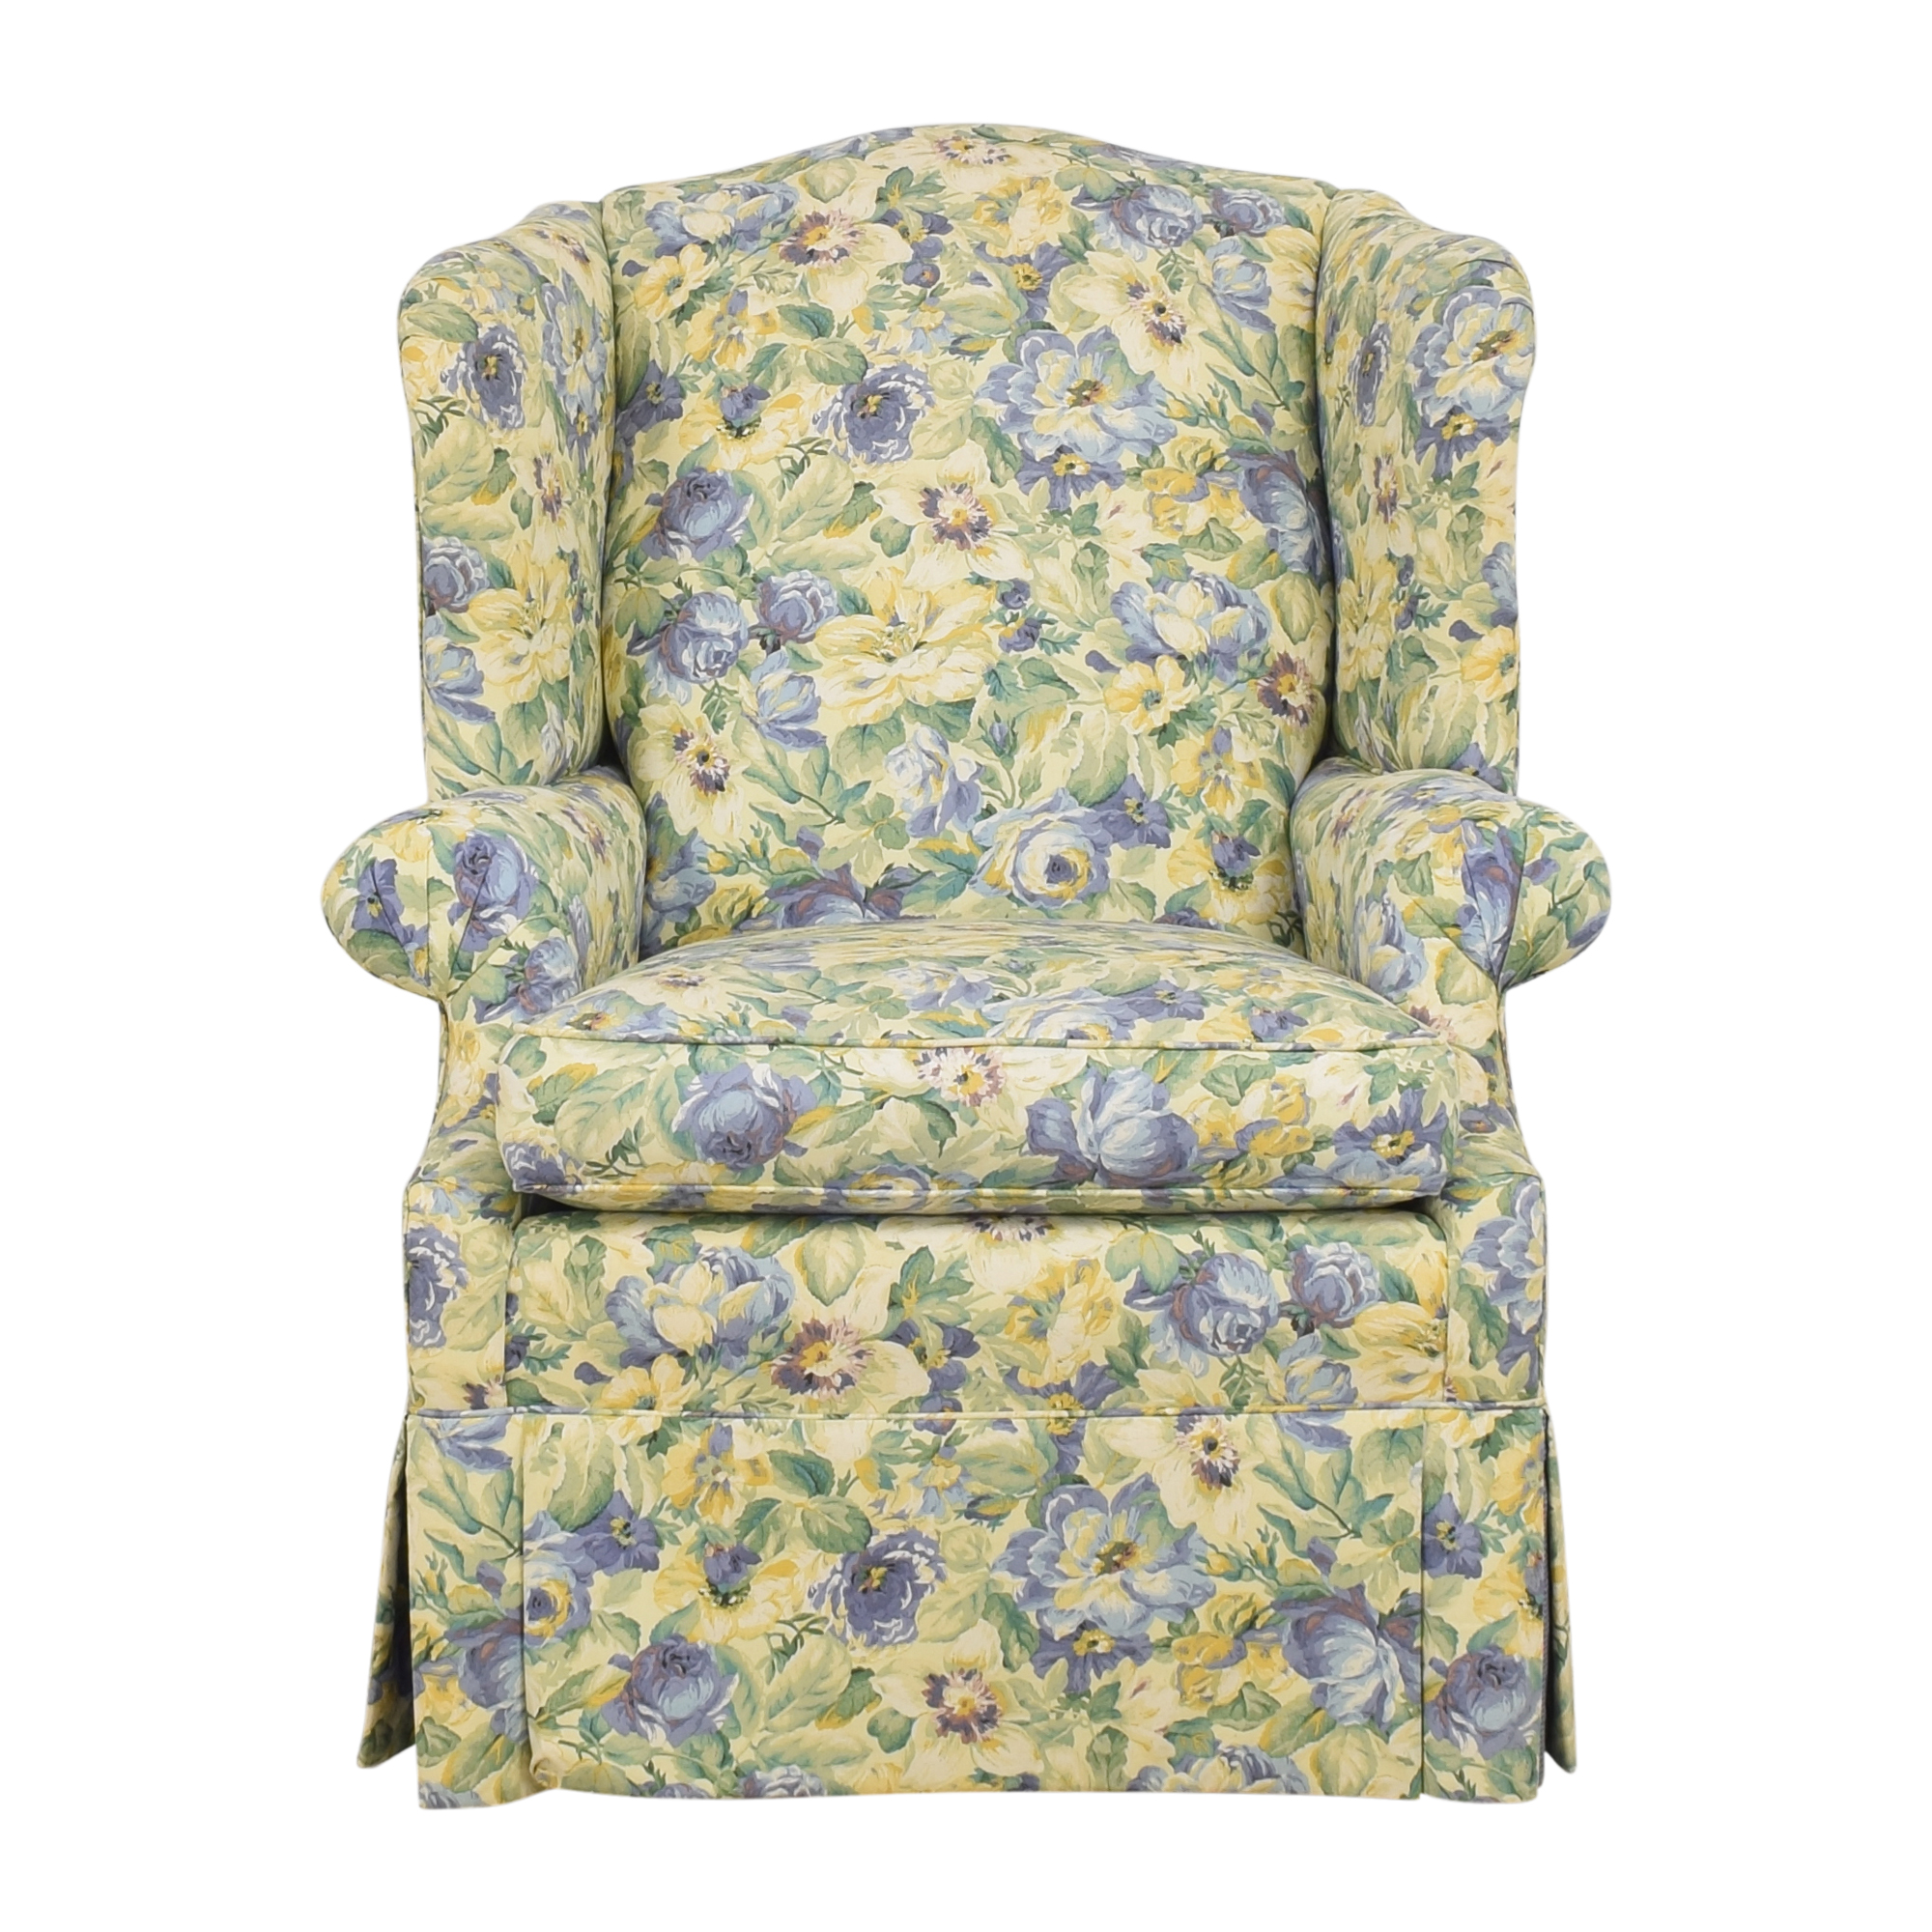 Ethan Allen Ethan Allen Skirted Wing Chair ct